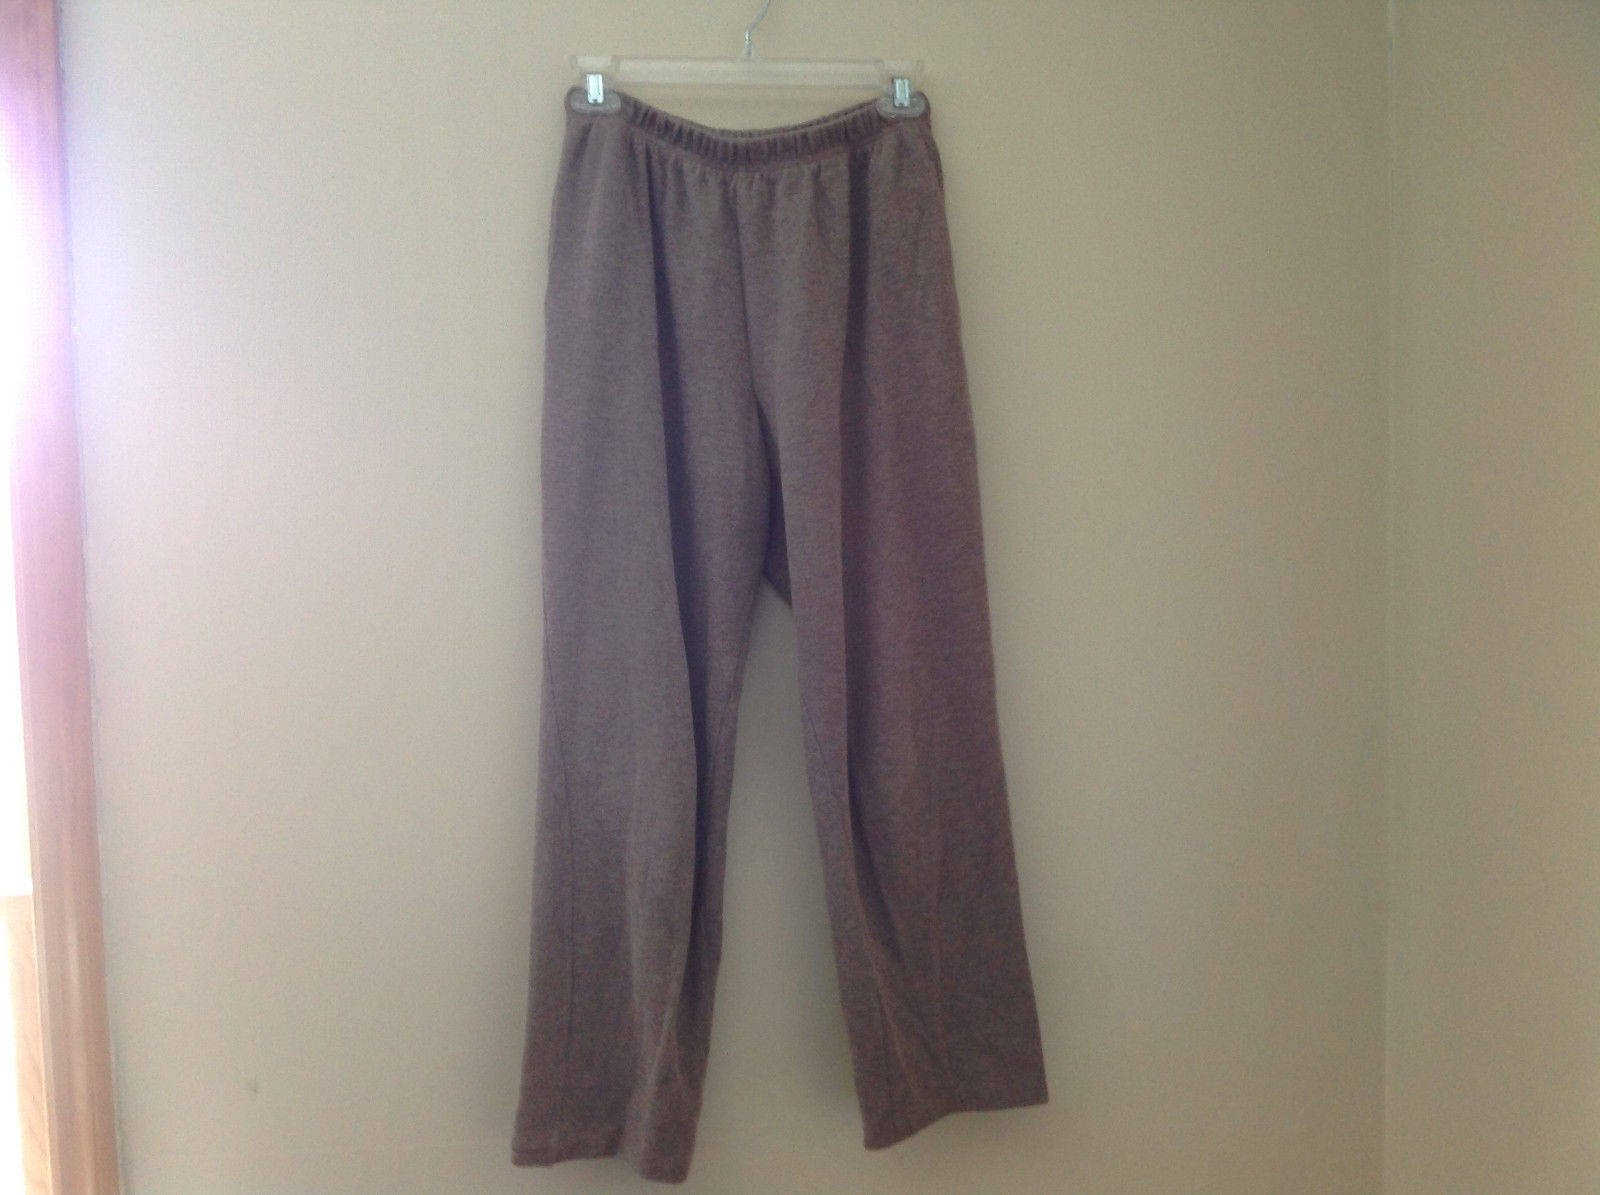 Tan Pocketed Elastic Waistband Sweatpants b Adrienne Vittadini Size S Petite